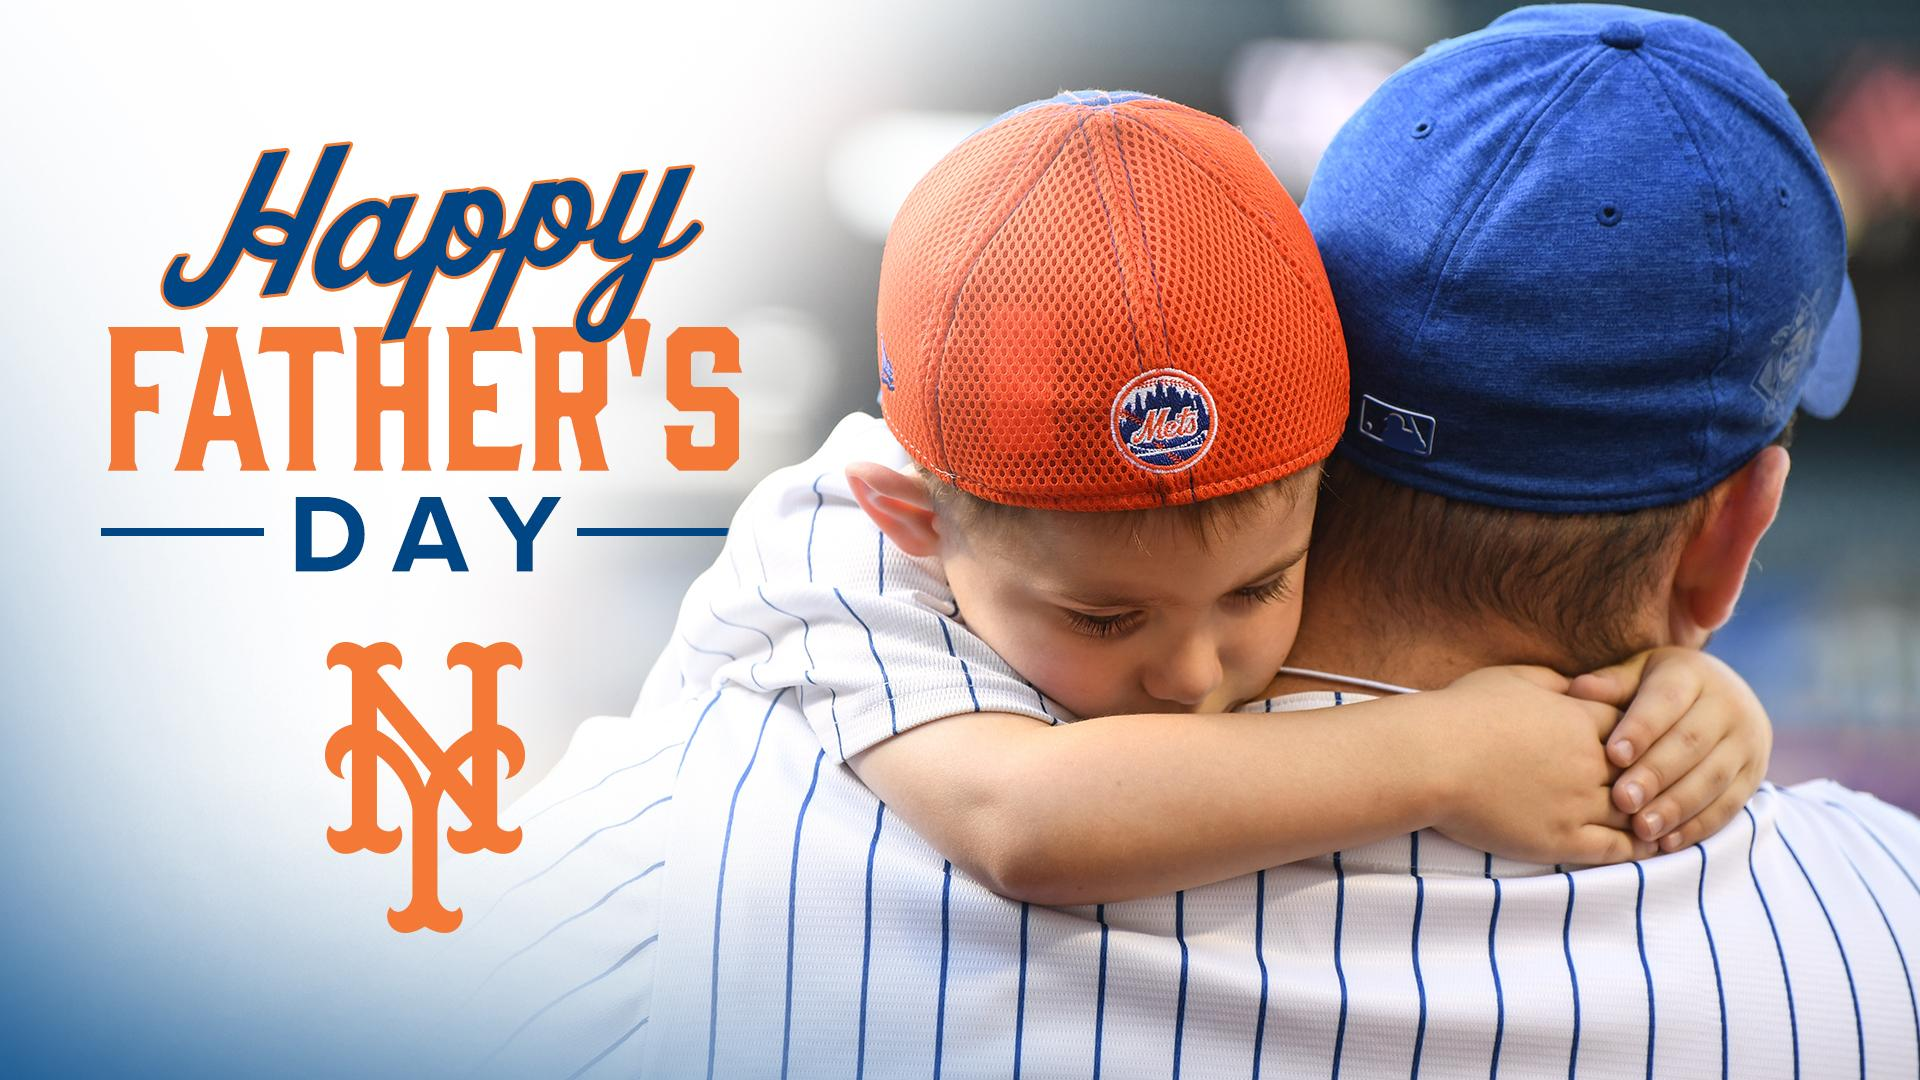 Happy #FathersDay! #LGM https://t.co/EI7iqwLiyV